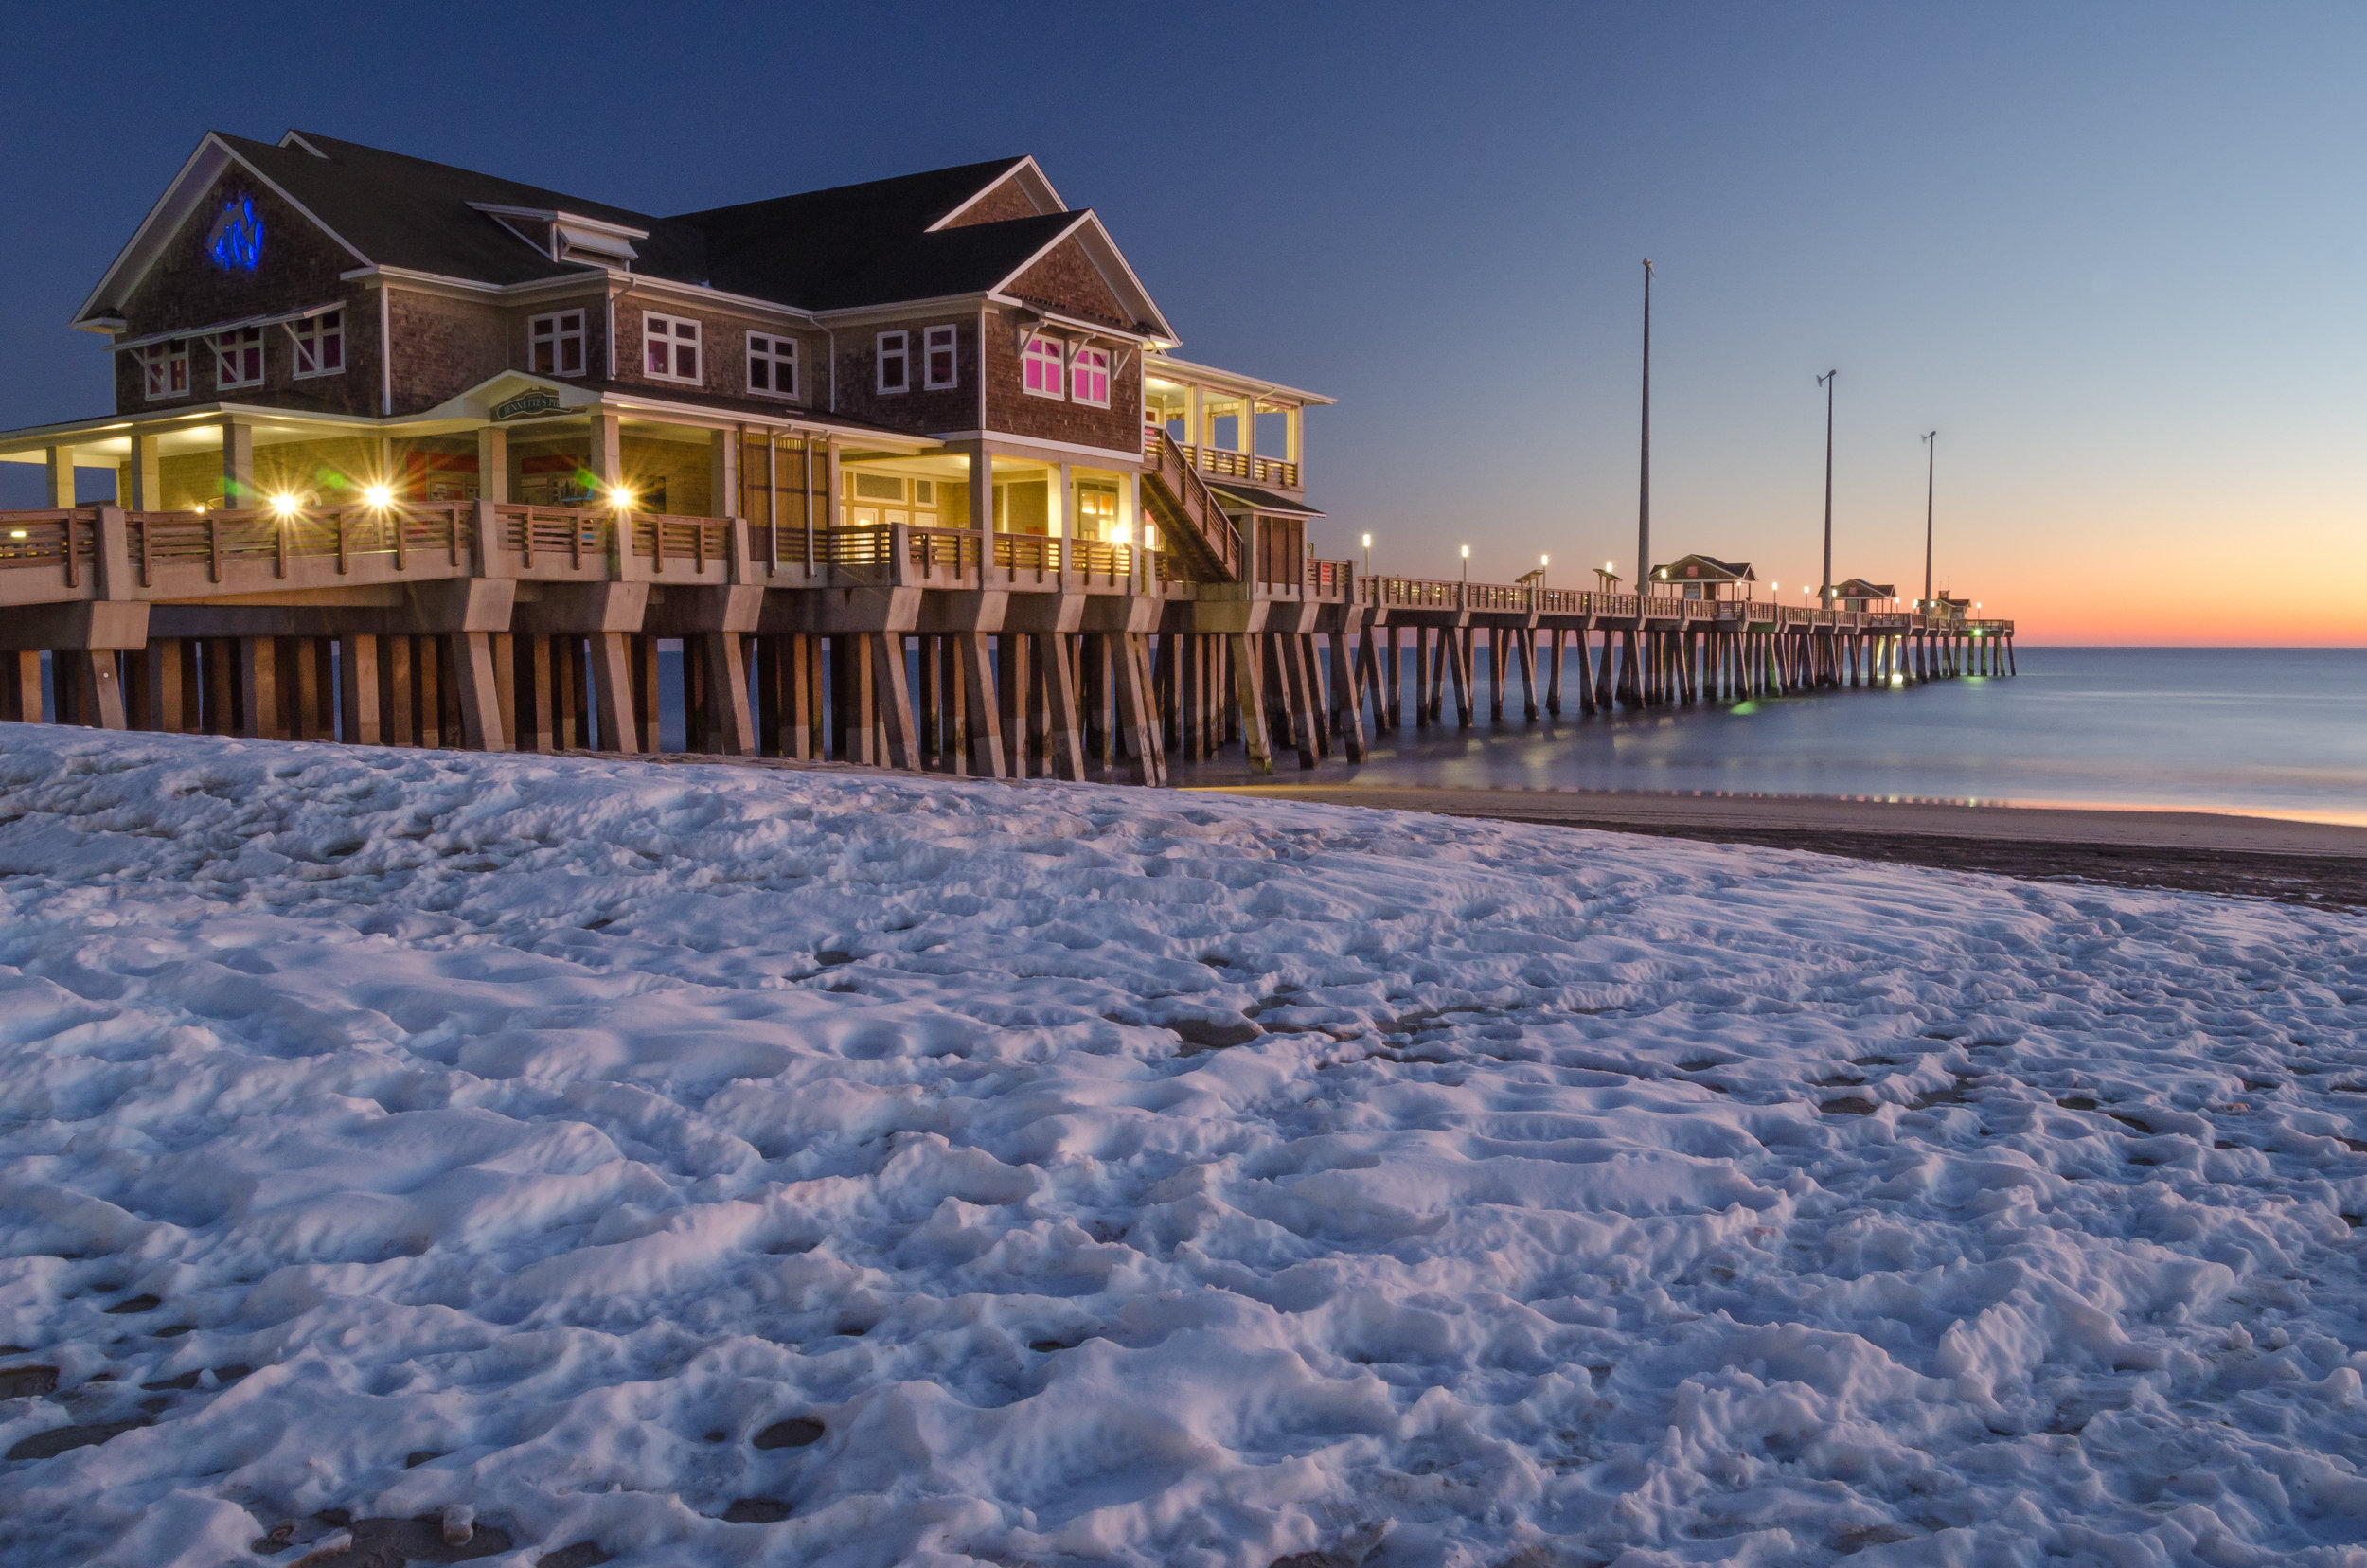 Snowy Sunrise at Jennette's Pier in Nags Head on the Outer Banks of North Carolina.jpg